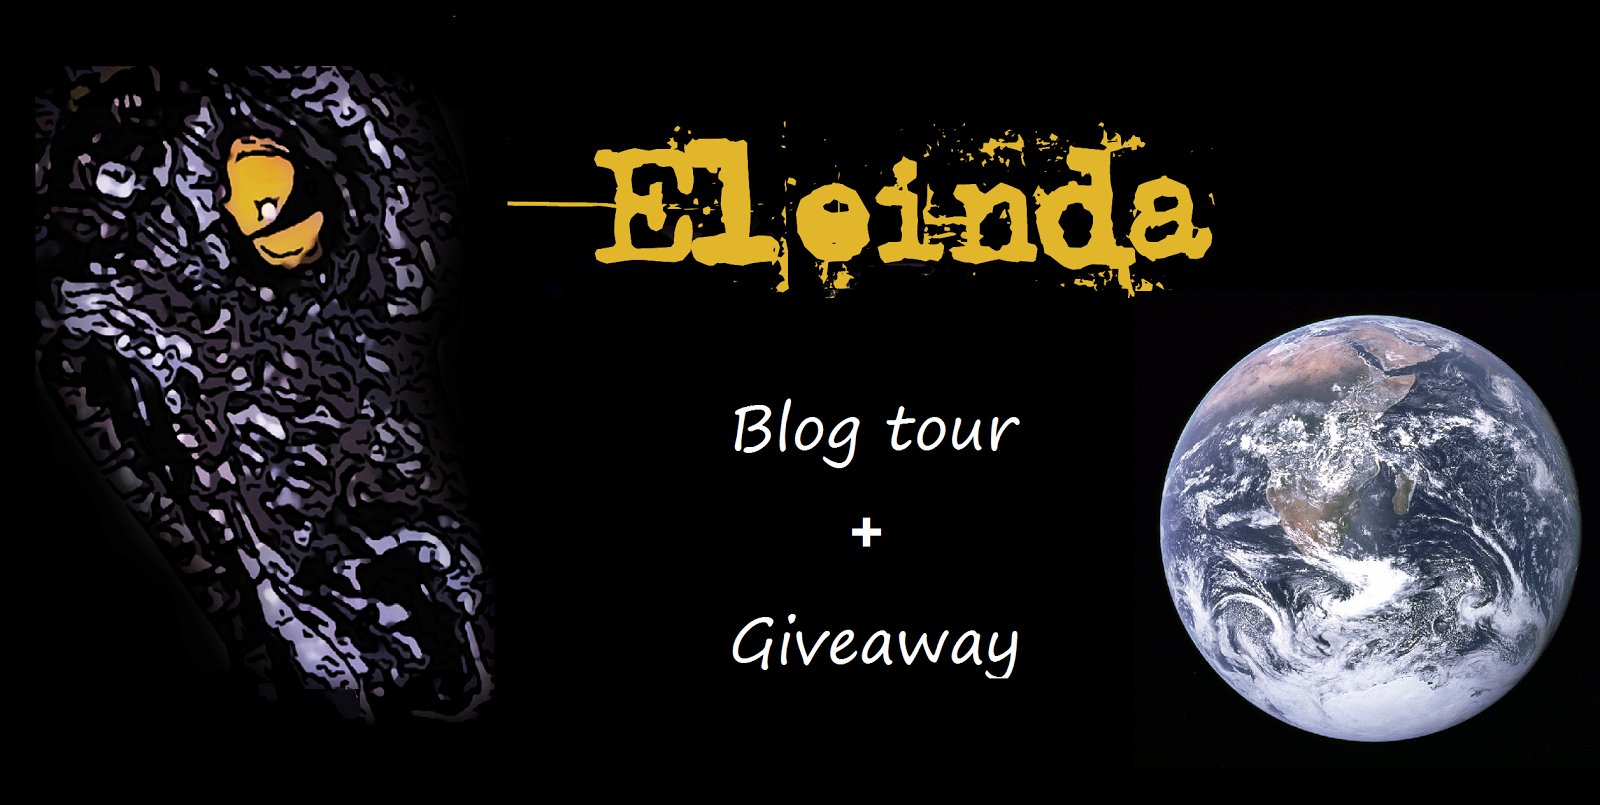 Eleinda Blog Tour!